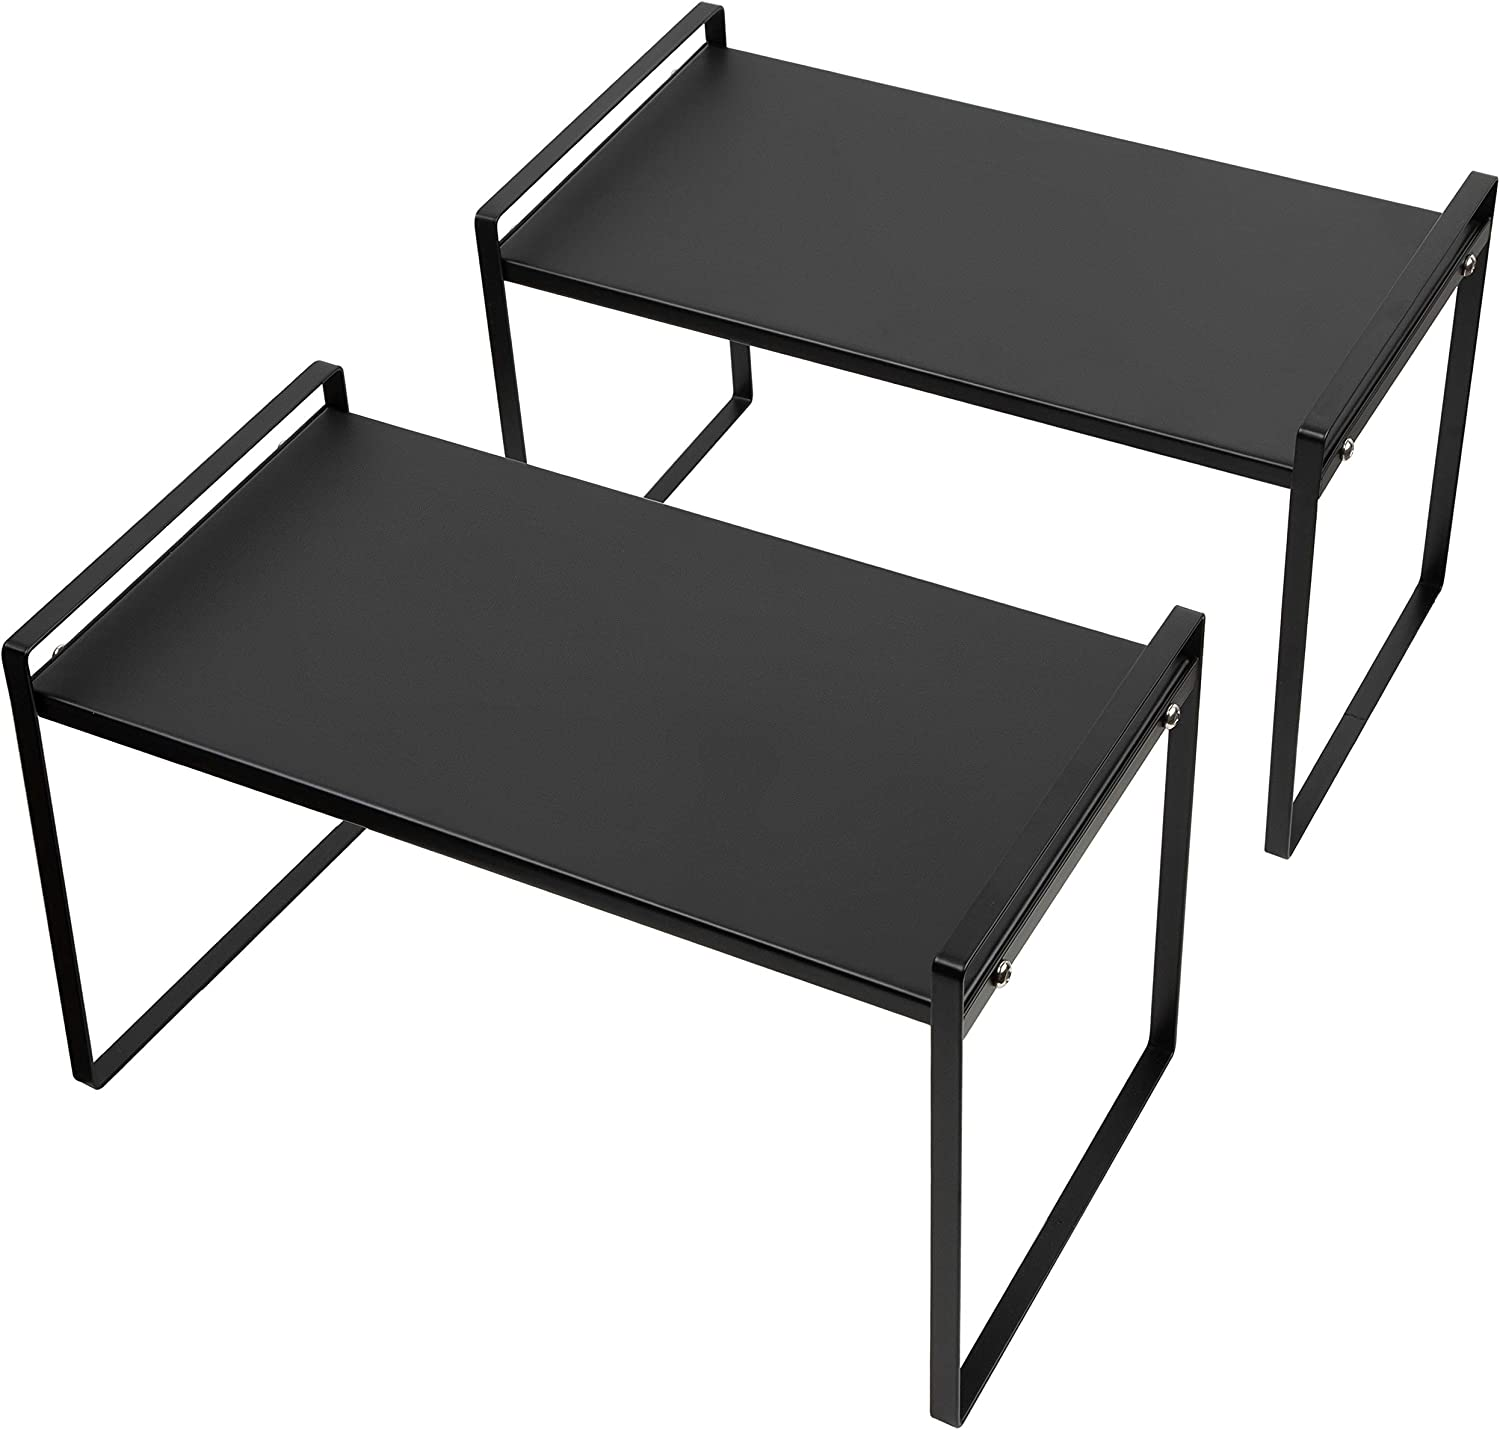 Beeloving 2Pack Stackable Cabinet Shelf Organizer Storage Rack for Countertop Desk Kitchen Bathroom Pantry Cupboard Home Office for Spice Dish Cup Bottle Pot Metal Plate Heavy Duty Nonslip Black Large